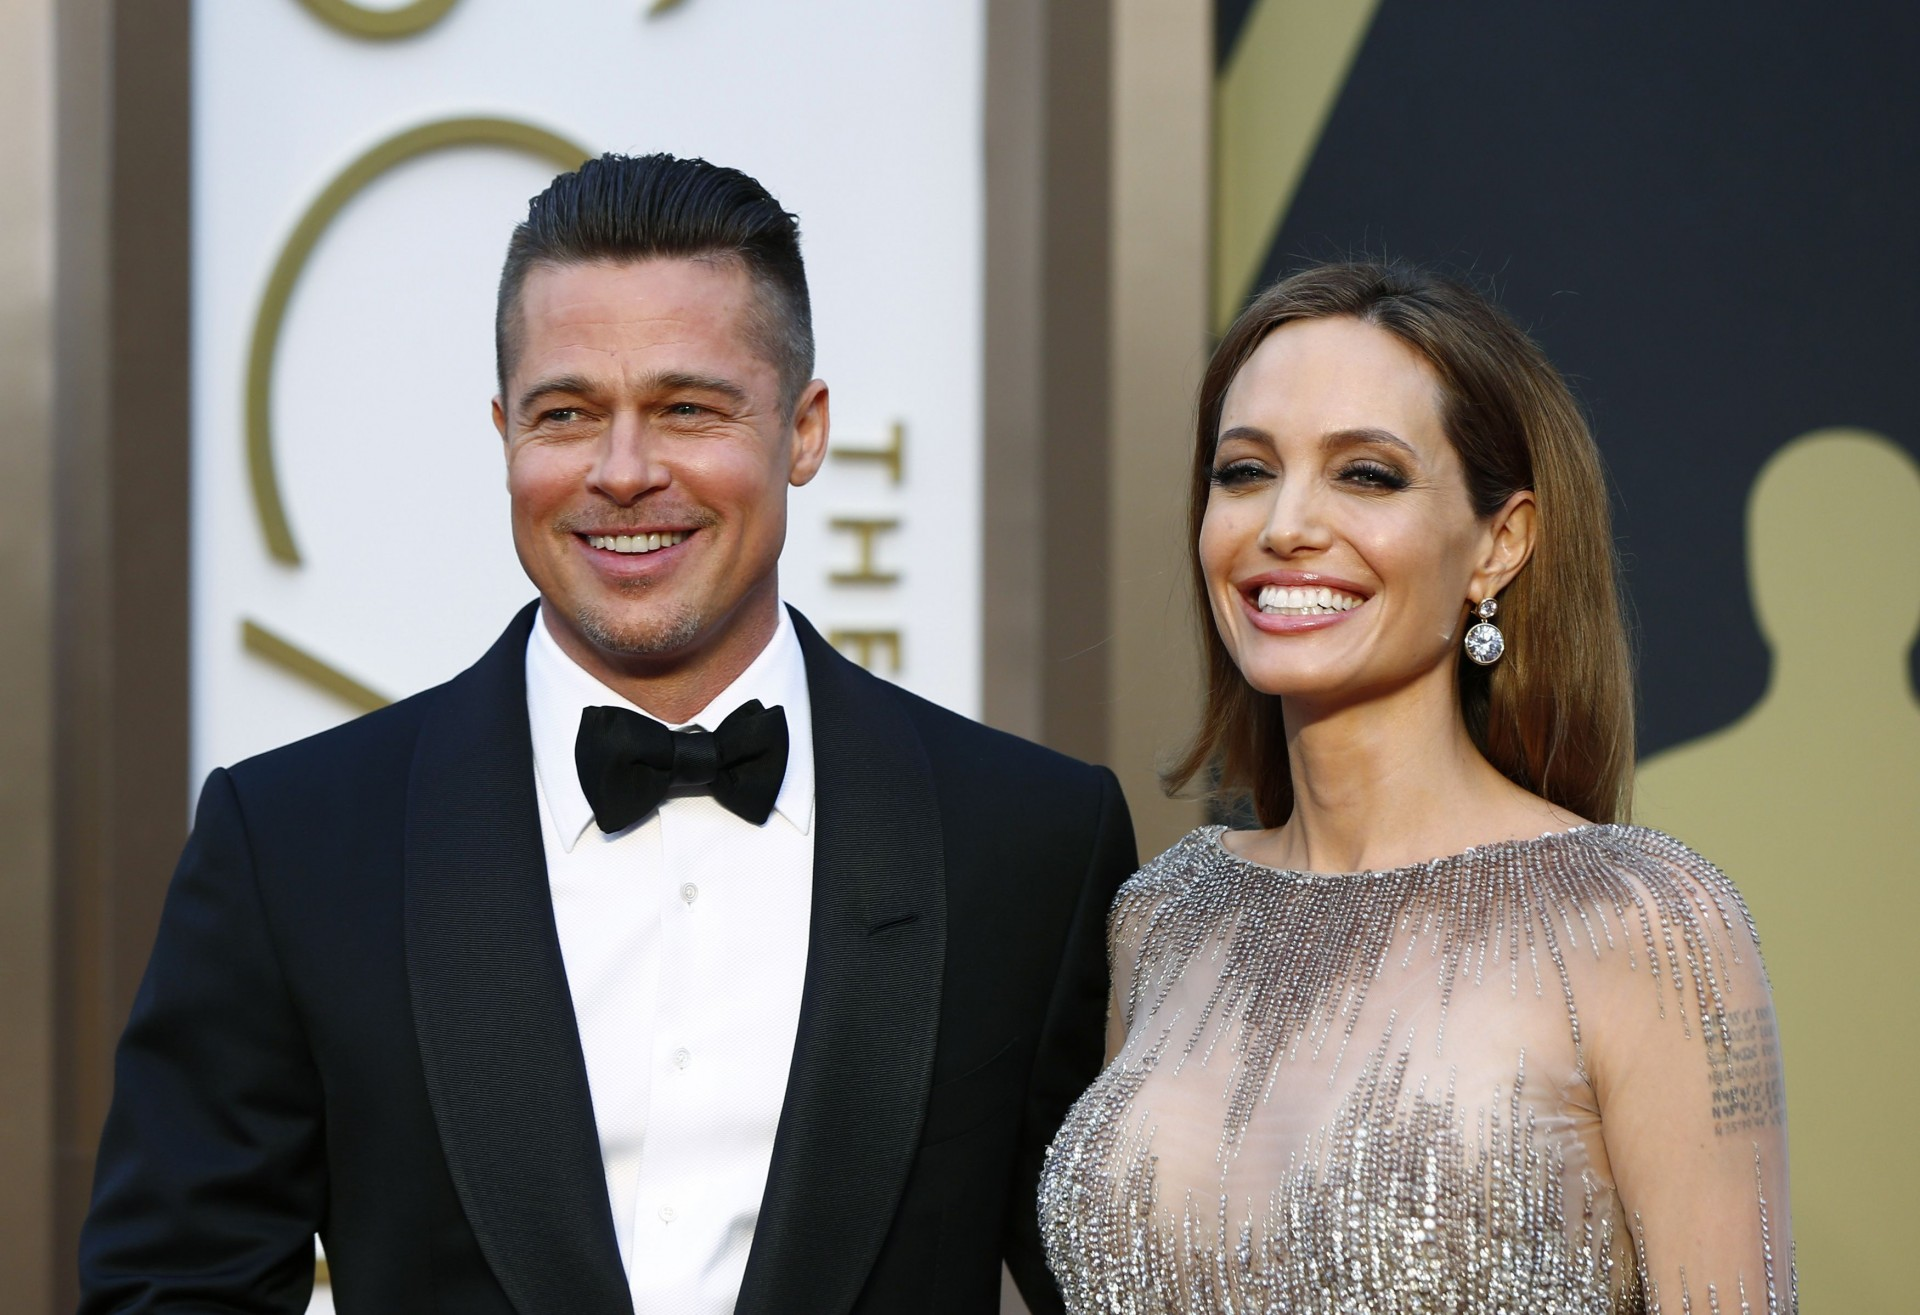 "Actor Brad Pitt and actress Angelina Jolie arrive at the 86th Academy Awards in Hollywood, California in this March 2, 2014 file photo. Brad Pitt and Angelina Jolie, the glamorous Hollywood couple dubbed ""Brangelina"" in tabloid headlines, were married in France, according to media reports on August 28, 2014. REUTERS/Lucas Jackson/Files (UNITED STATES - Tags: ENTERTAINMENT)"